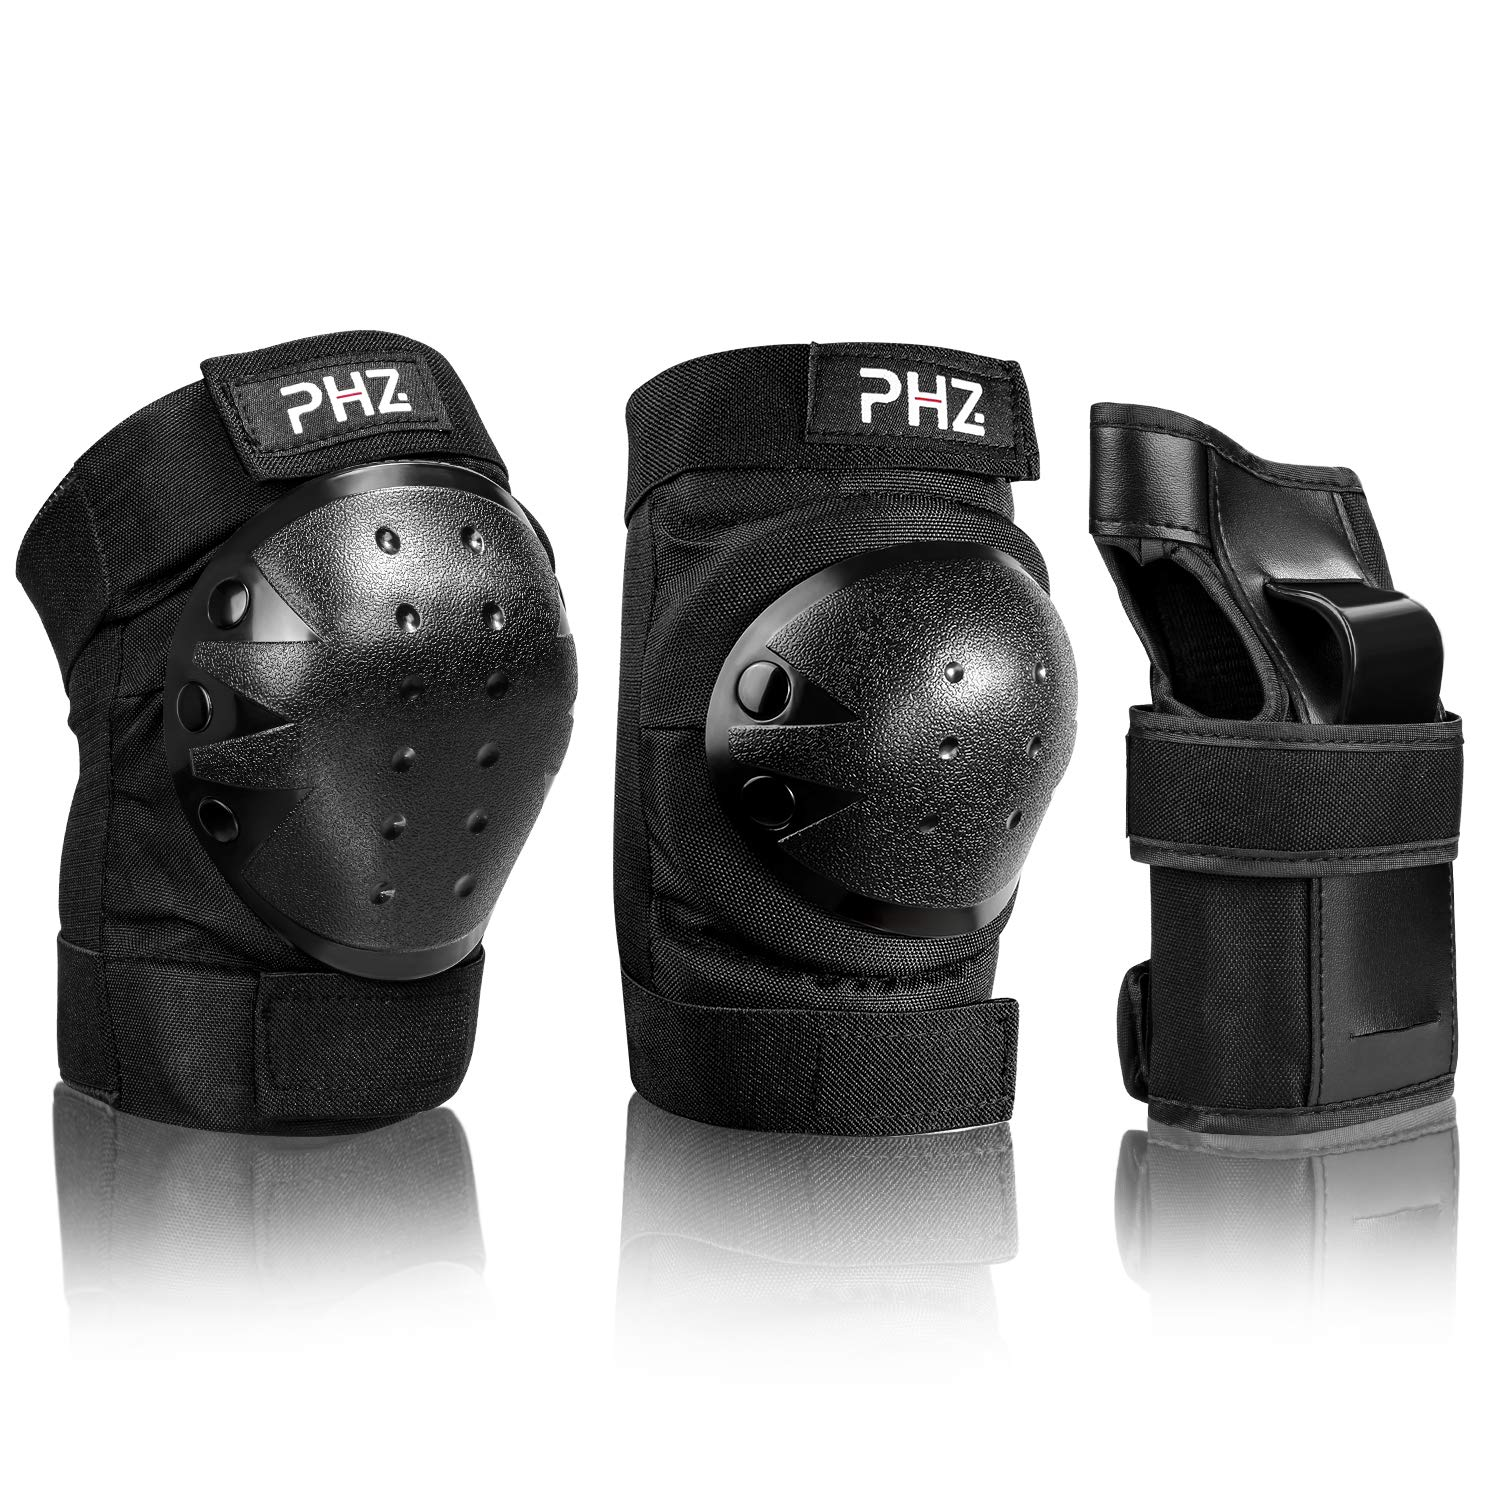 PHZ Kids 3 in 1 Protective Gear Set Knee Pads Elbow Pads Wrist Guards for Skateboard Cycling Skating Bike (Black, Large)